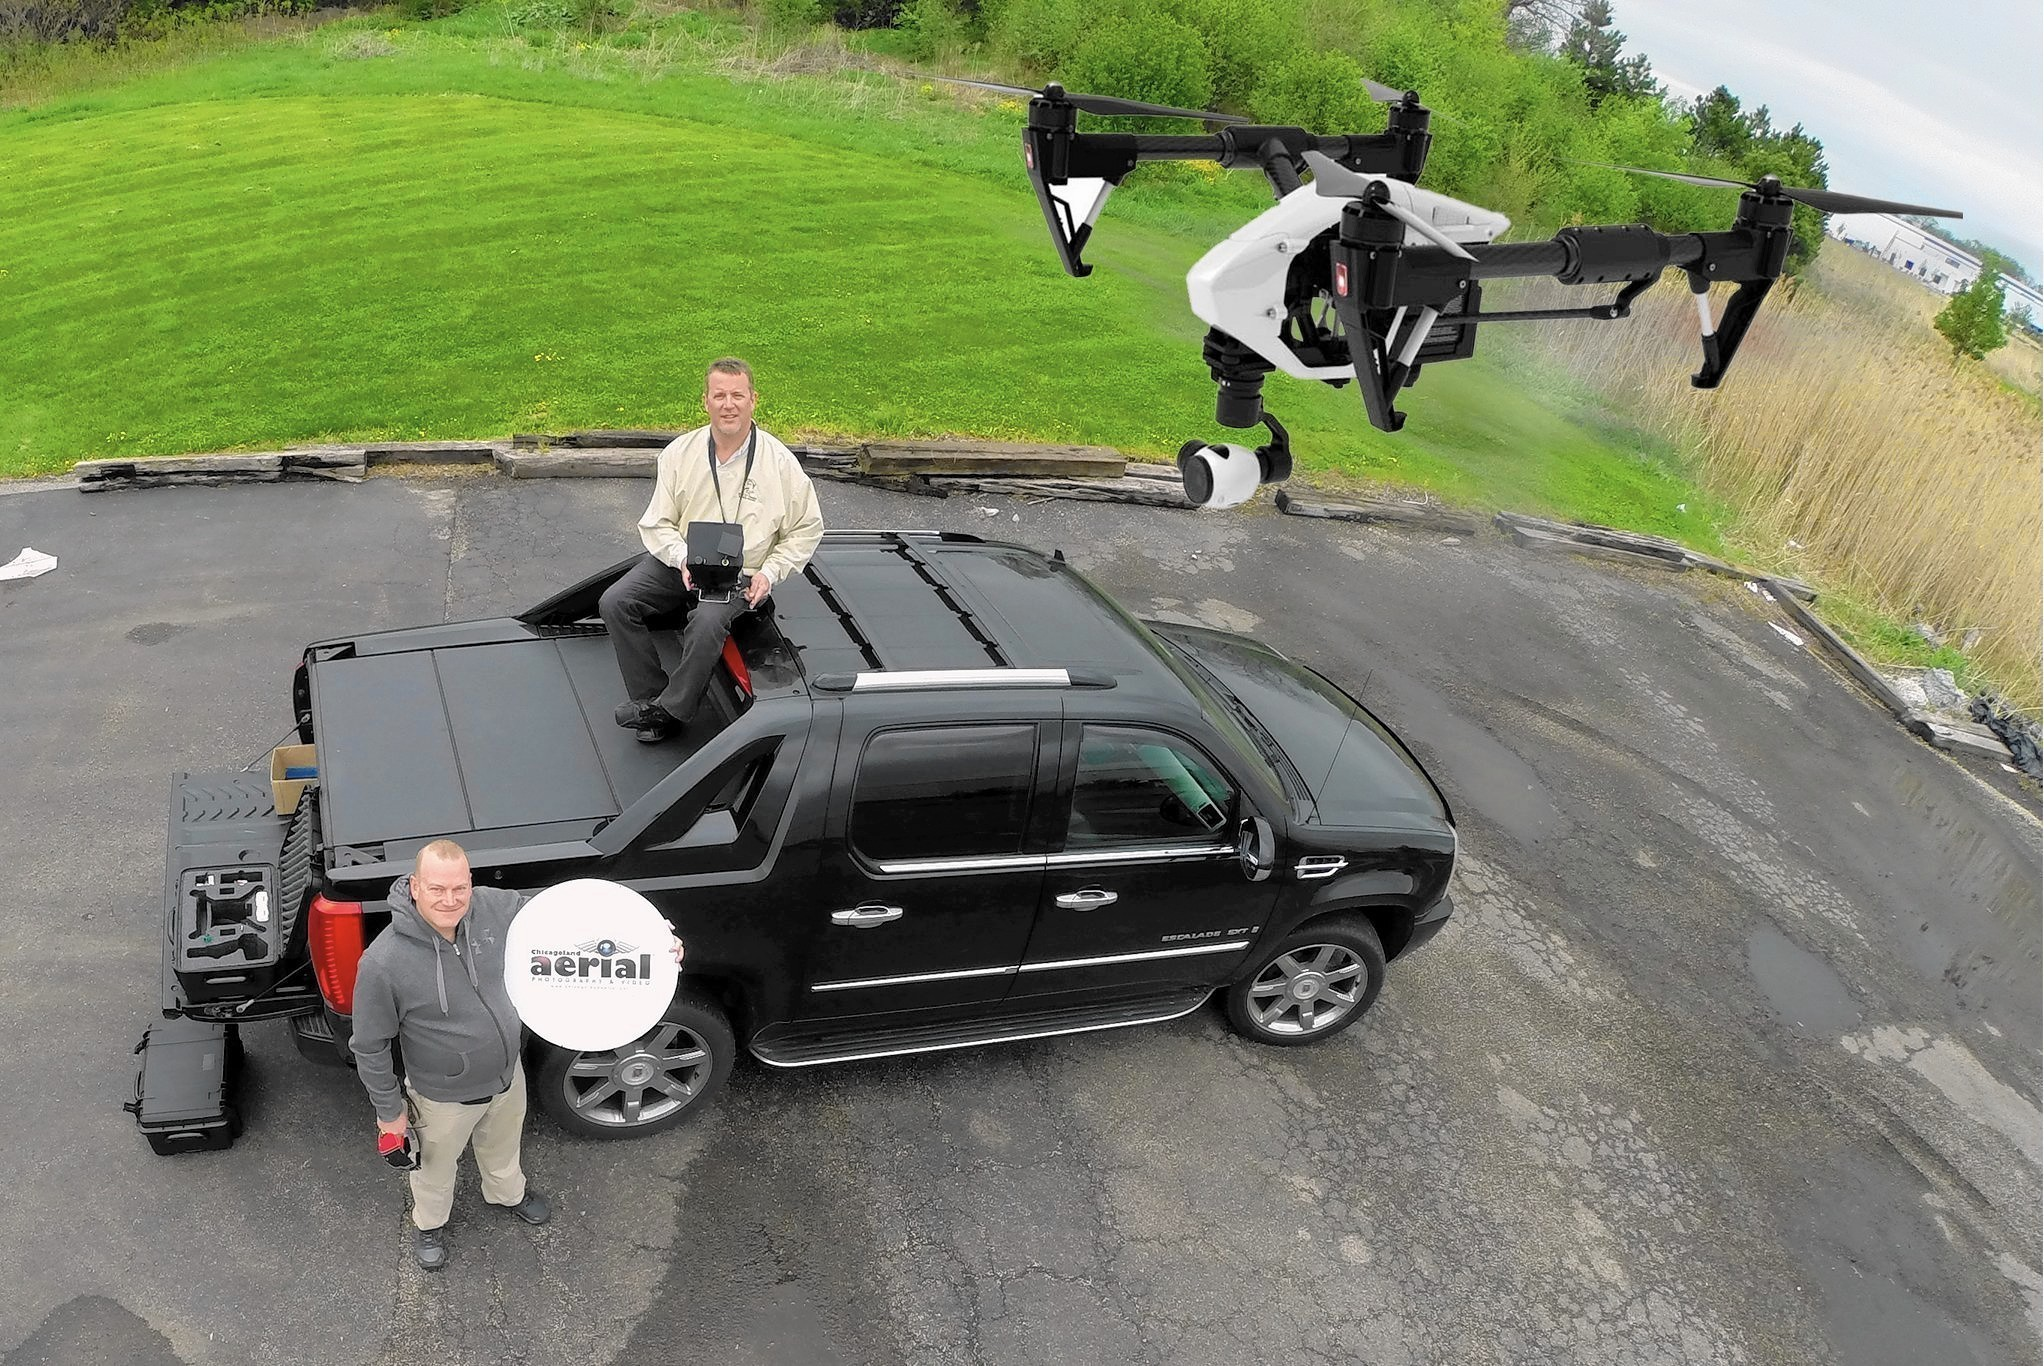 Commercial drones buzz the skies from Lake Zurich